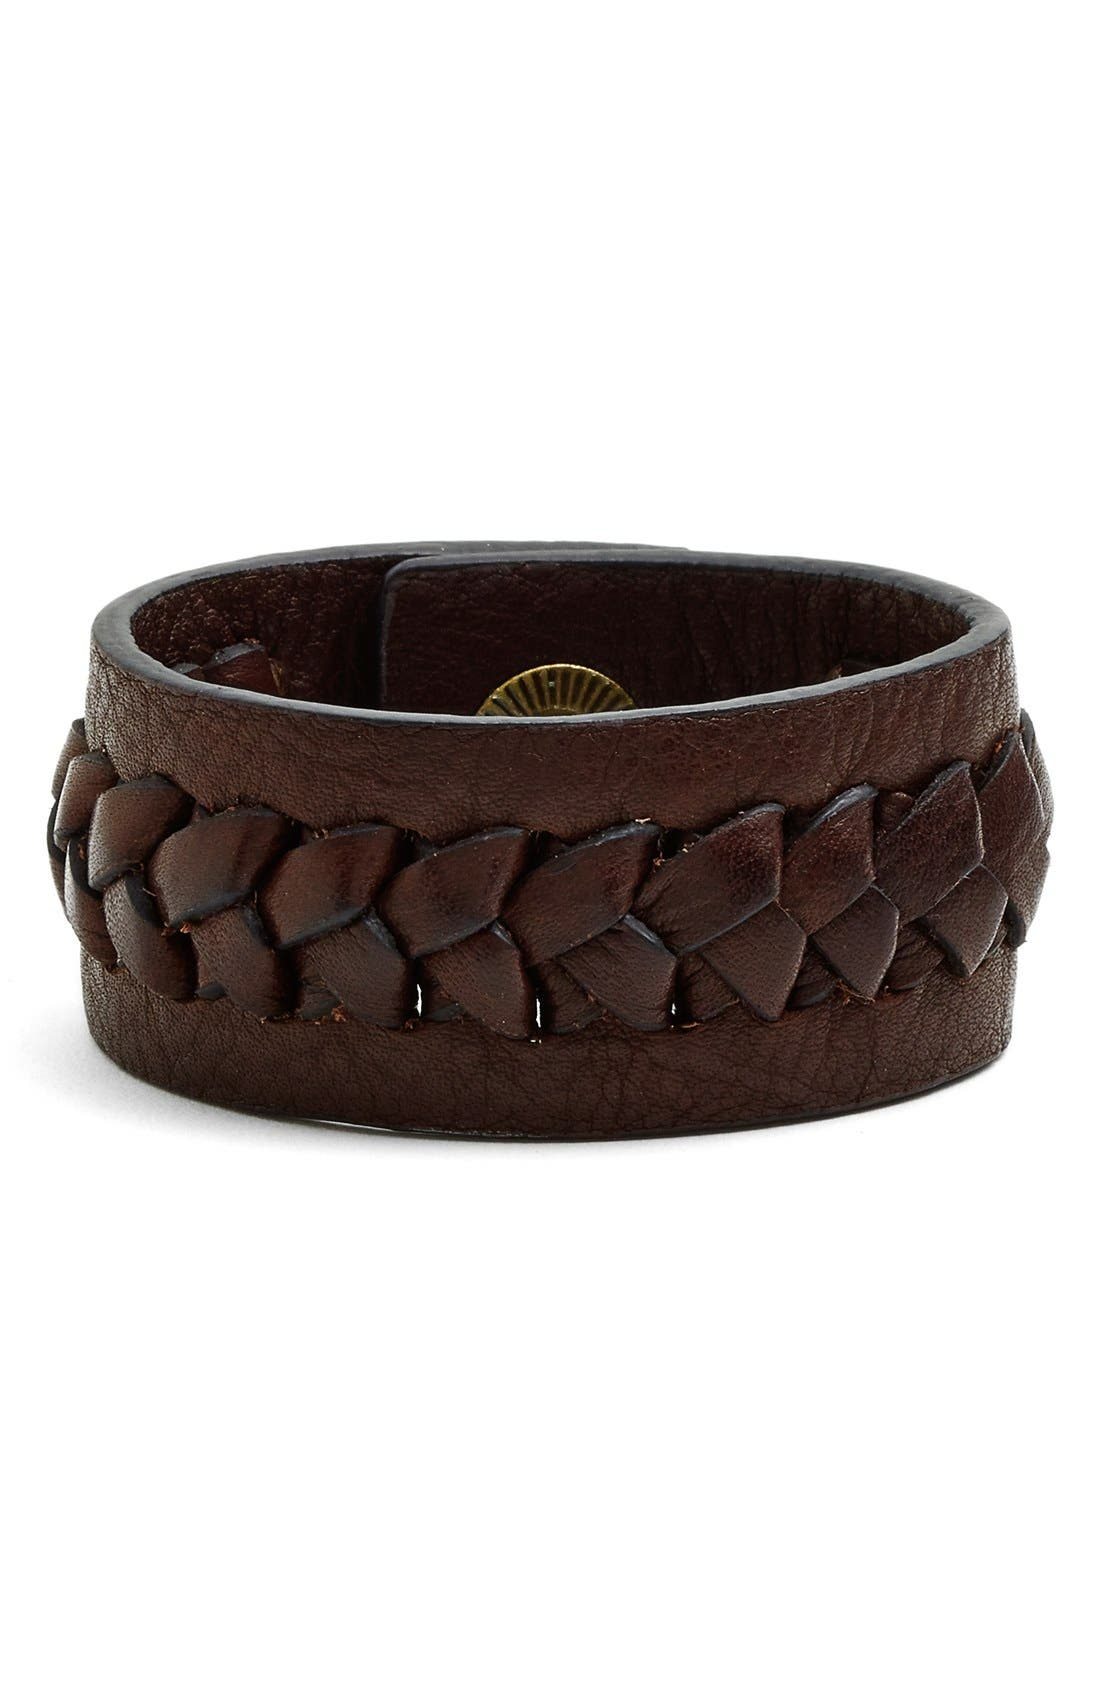 Main Image - Frye 'Jenny' Braided Leather Bracelet